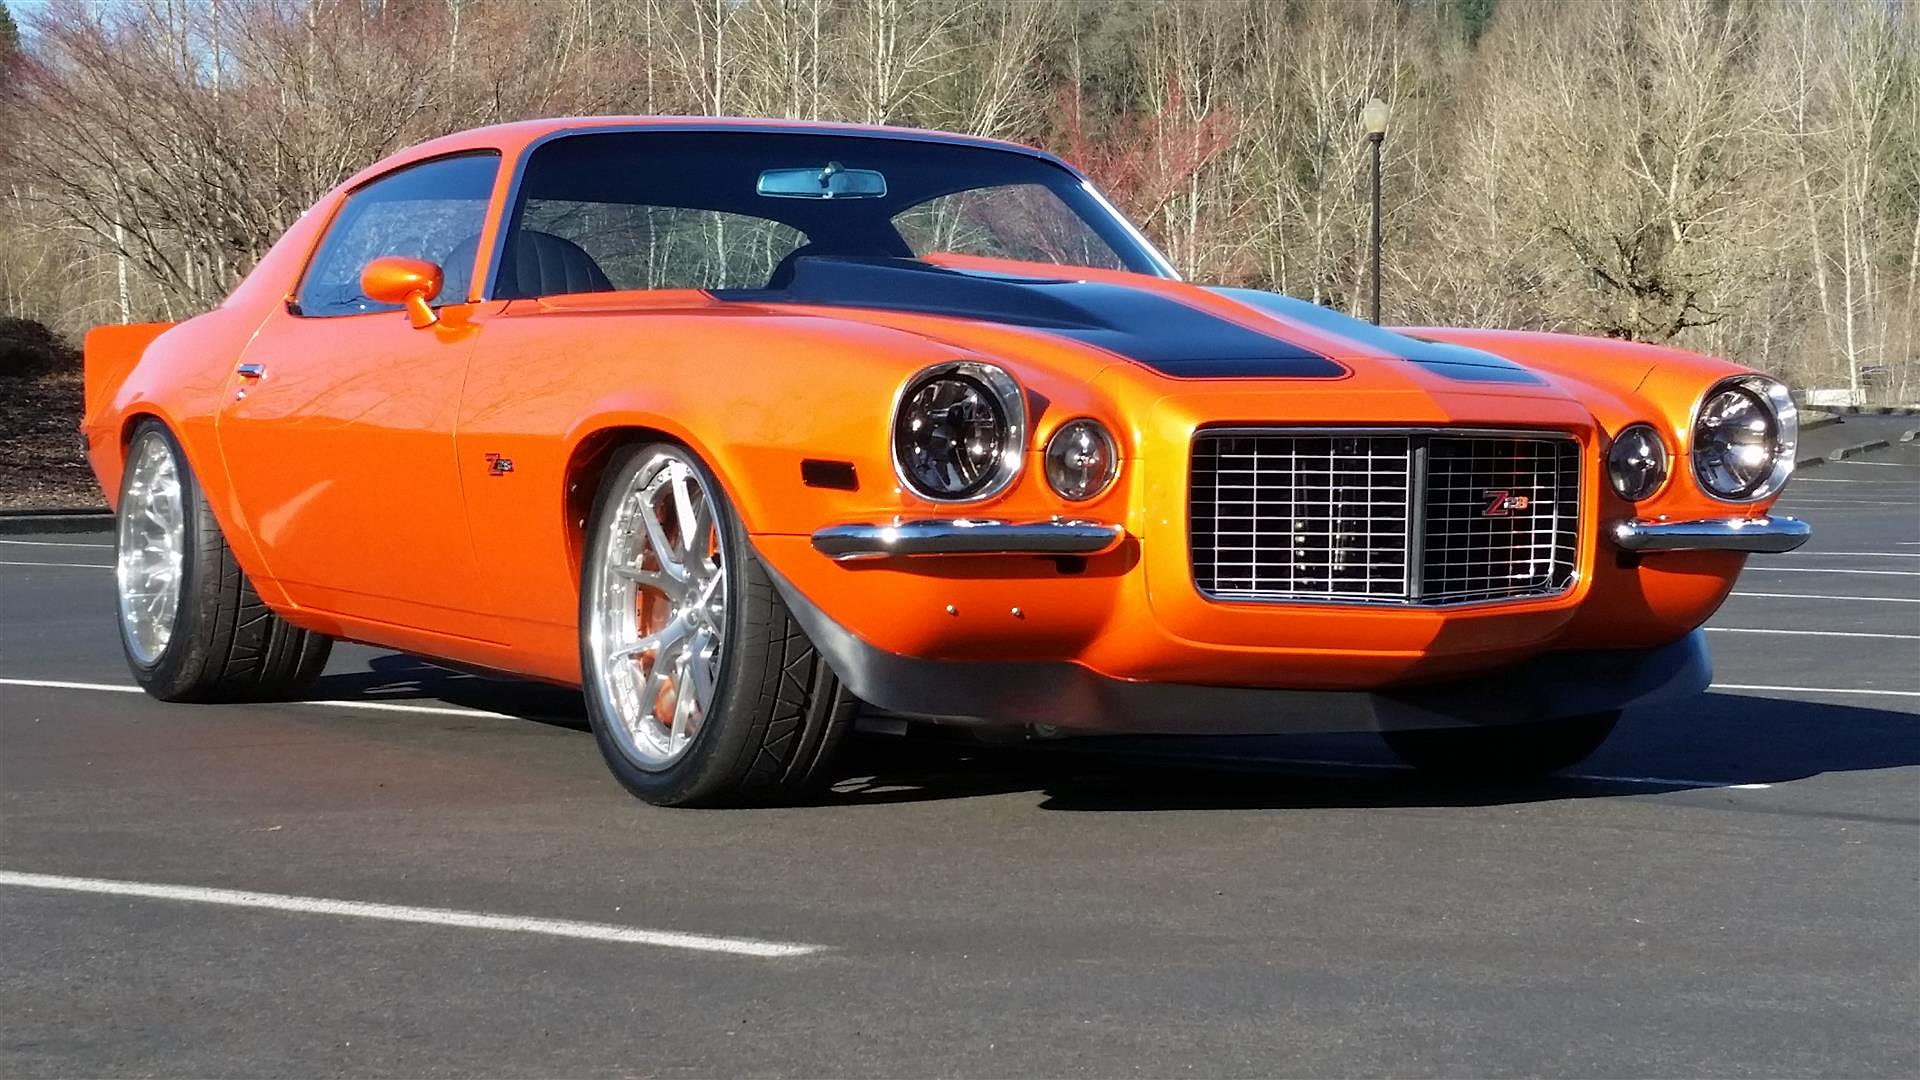 Super Camaros Tm 1971 Super Camaro Ls3 Orange Resto Mod